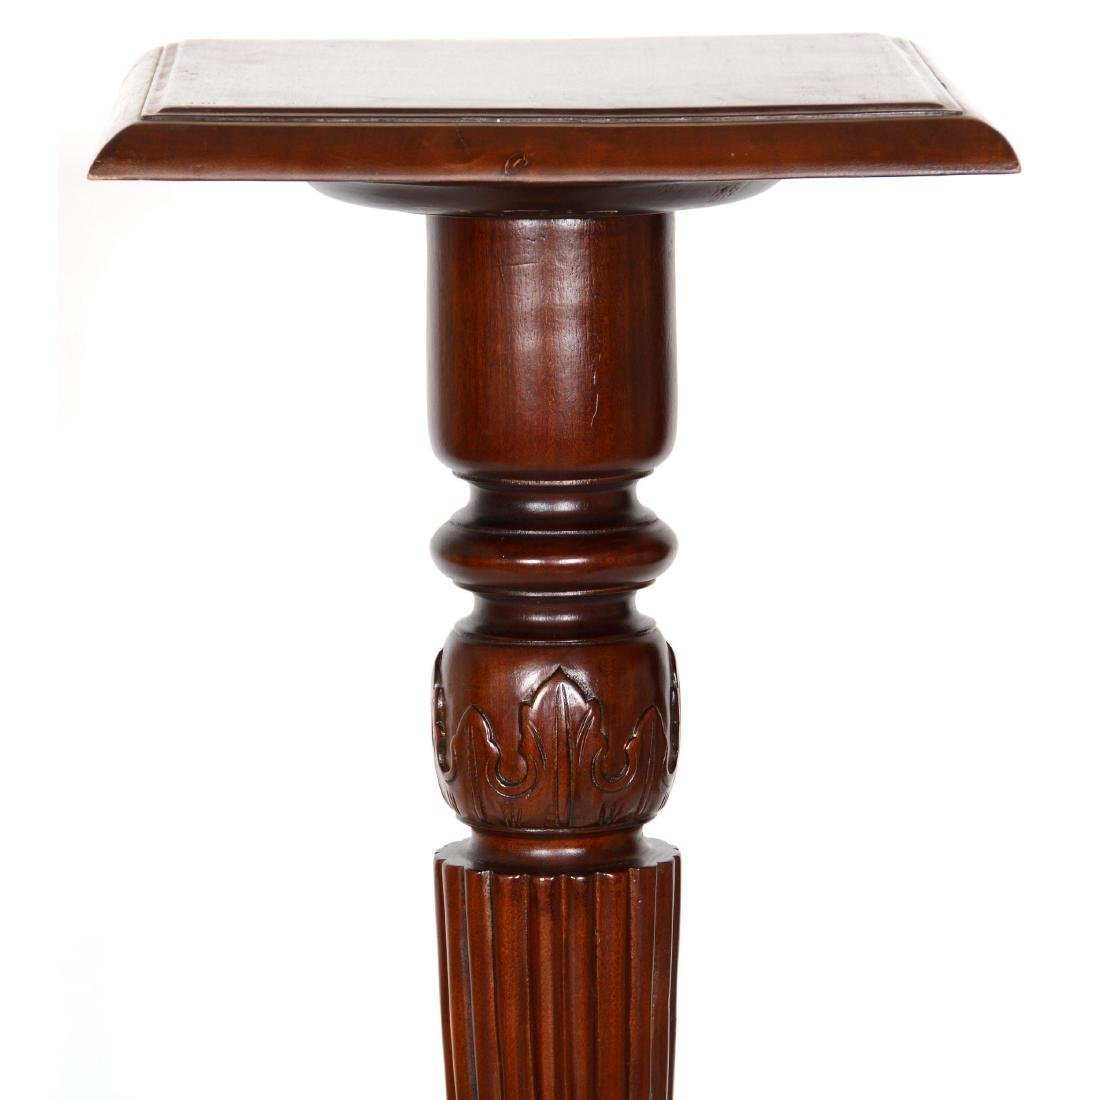 Carved Mahogany Plant Stand/Pedestal - 2